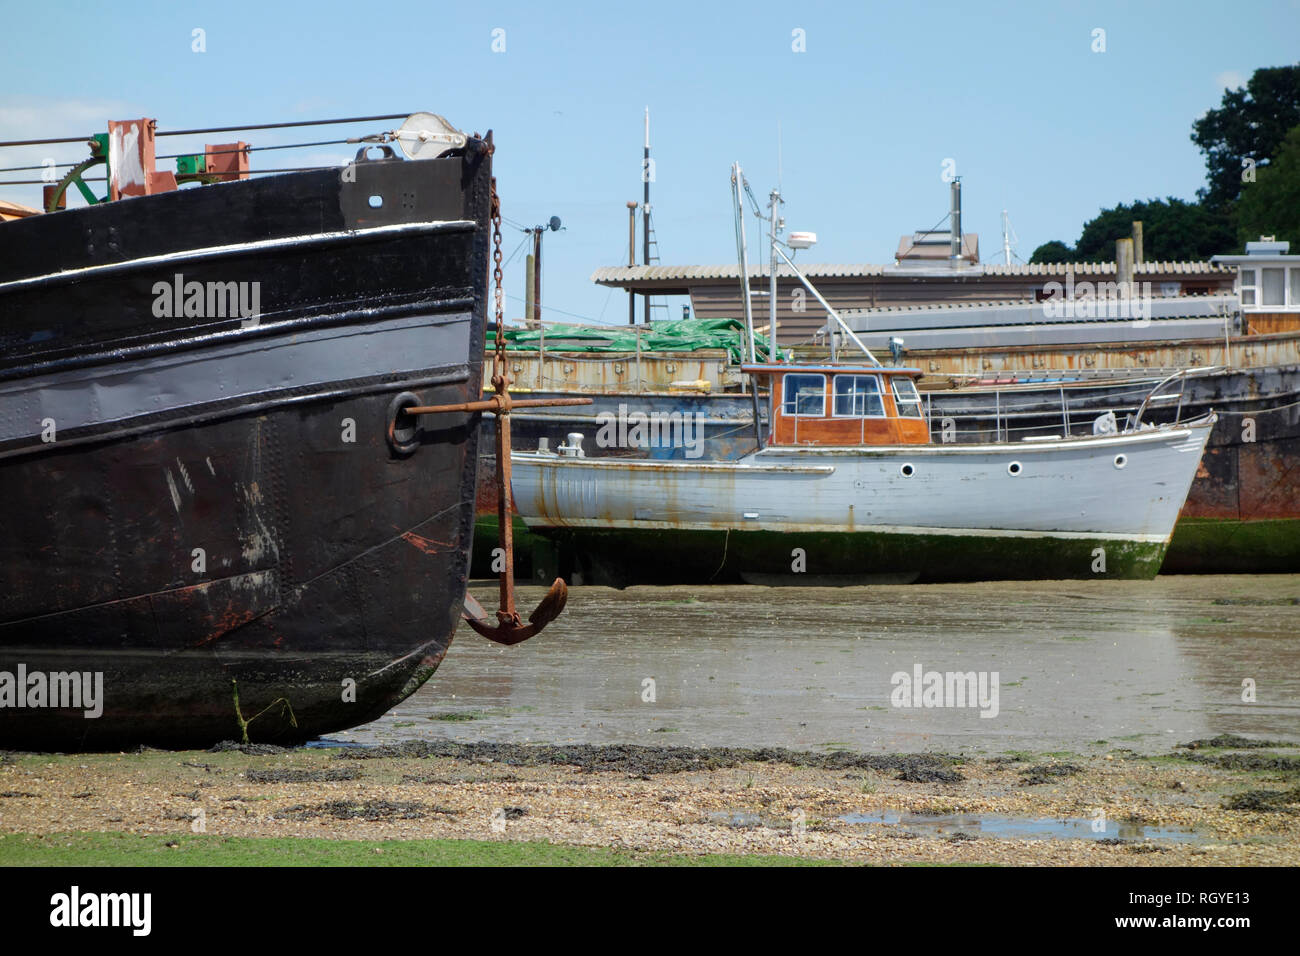 Boats moored at Pin Mill, Suffolk - Stock Image